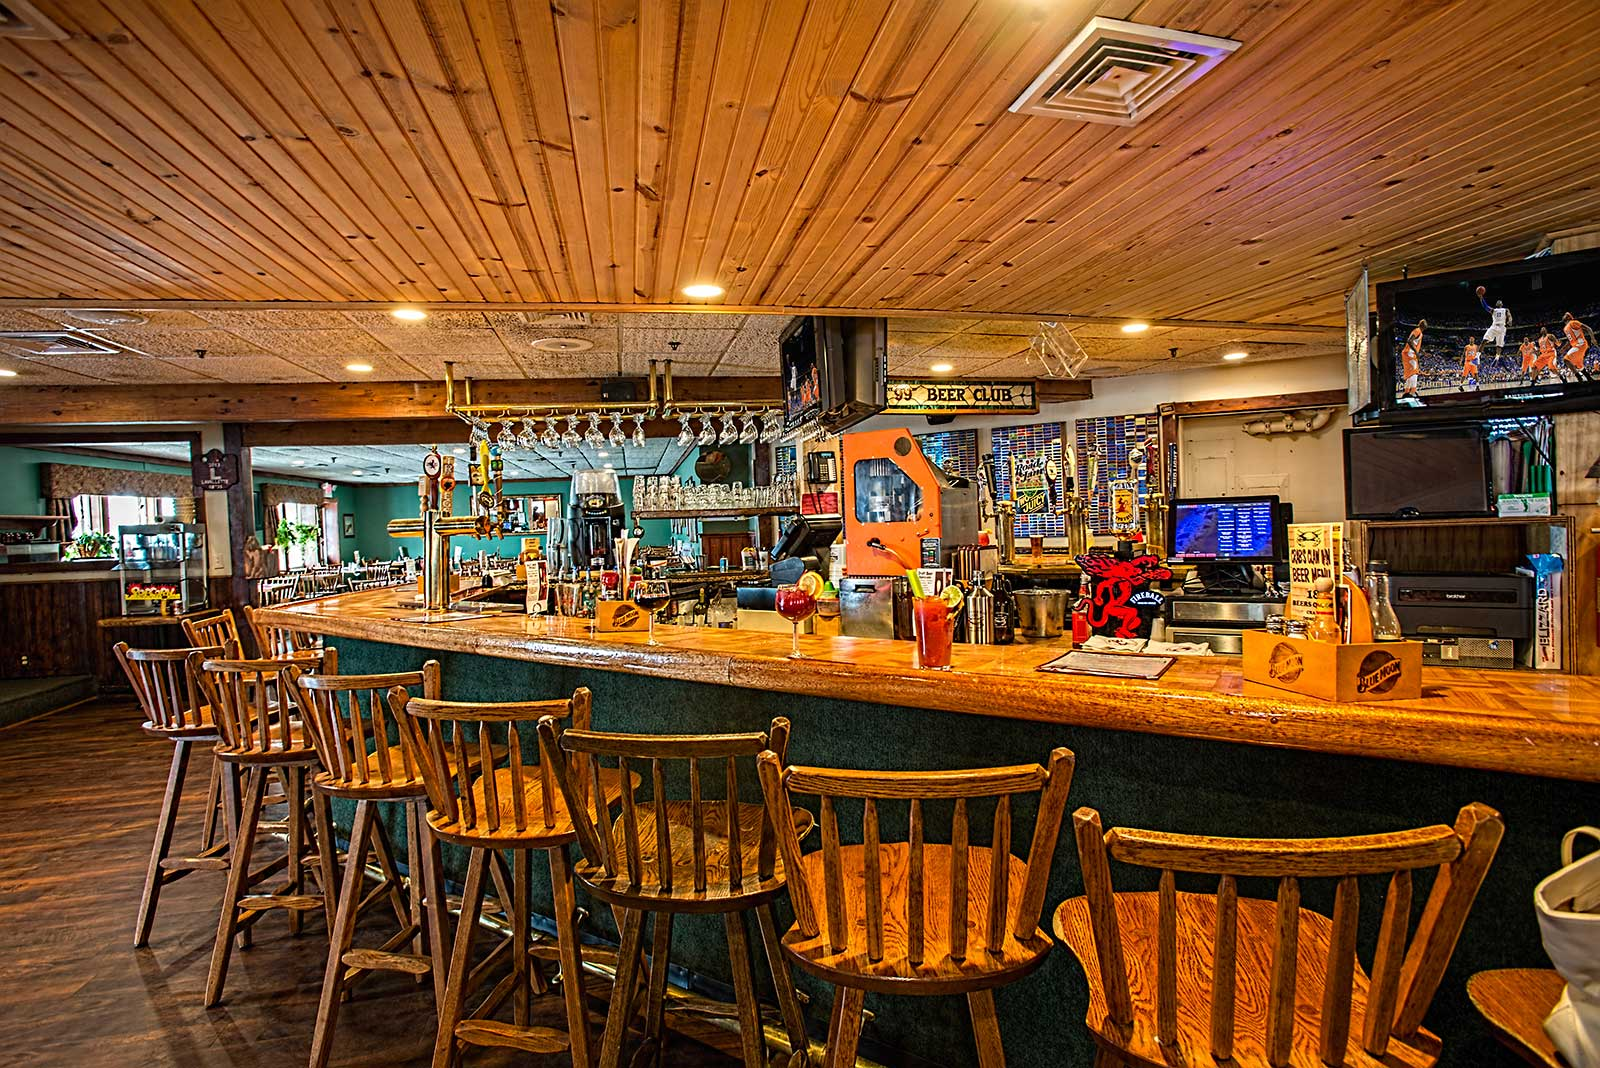 Bars Lavallette New Jersey The Crabs Claw Inn NJ